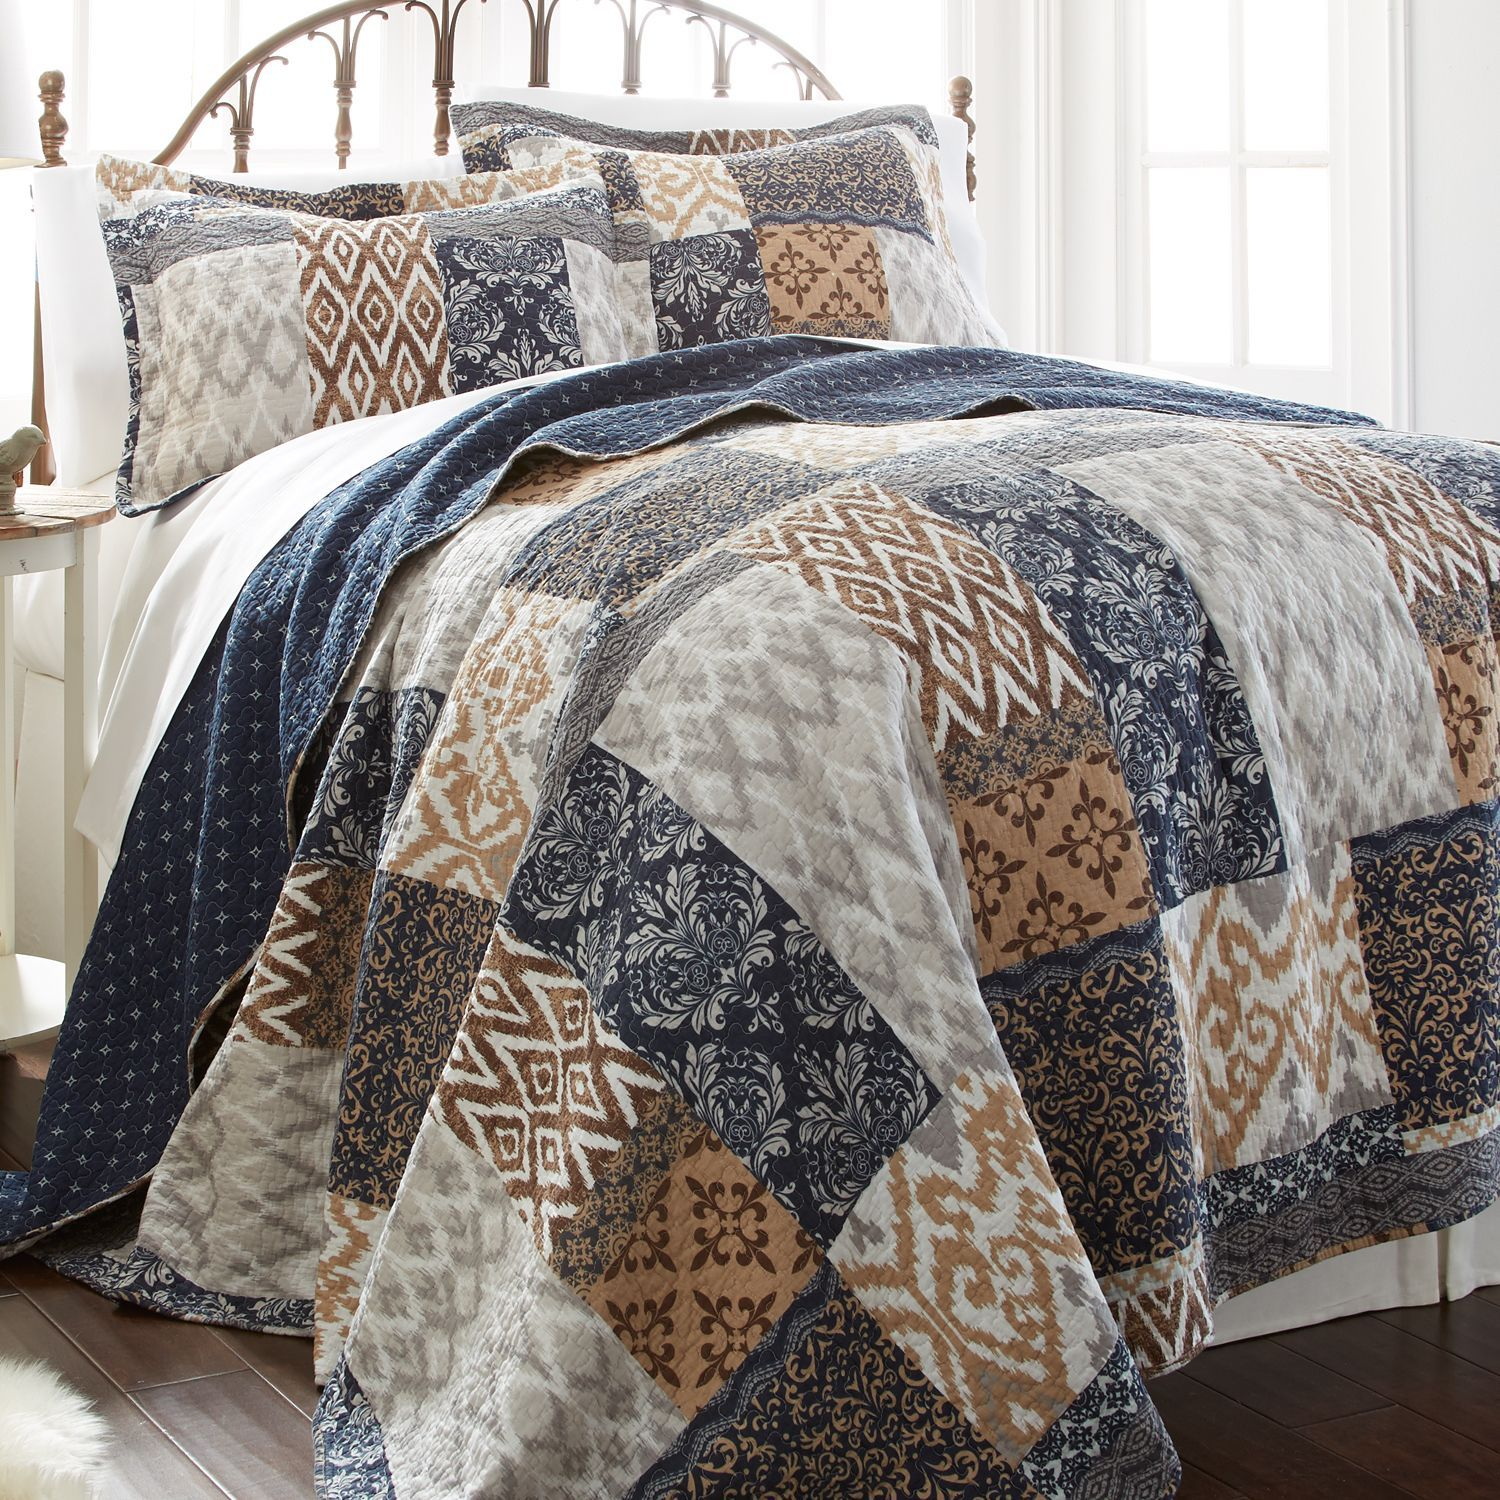 Fashion Bedding Free Shipping on orders over $45 at Overstock